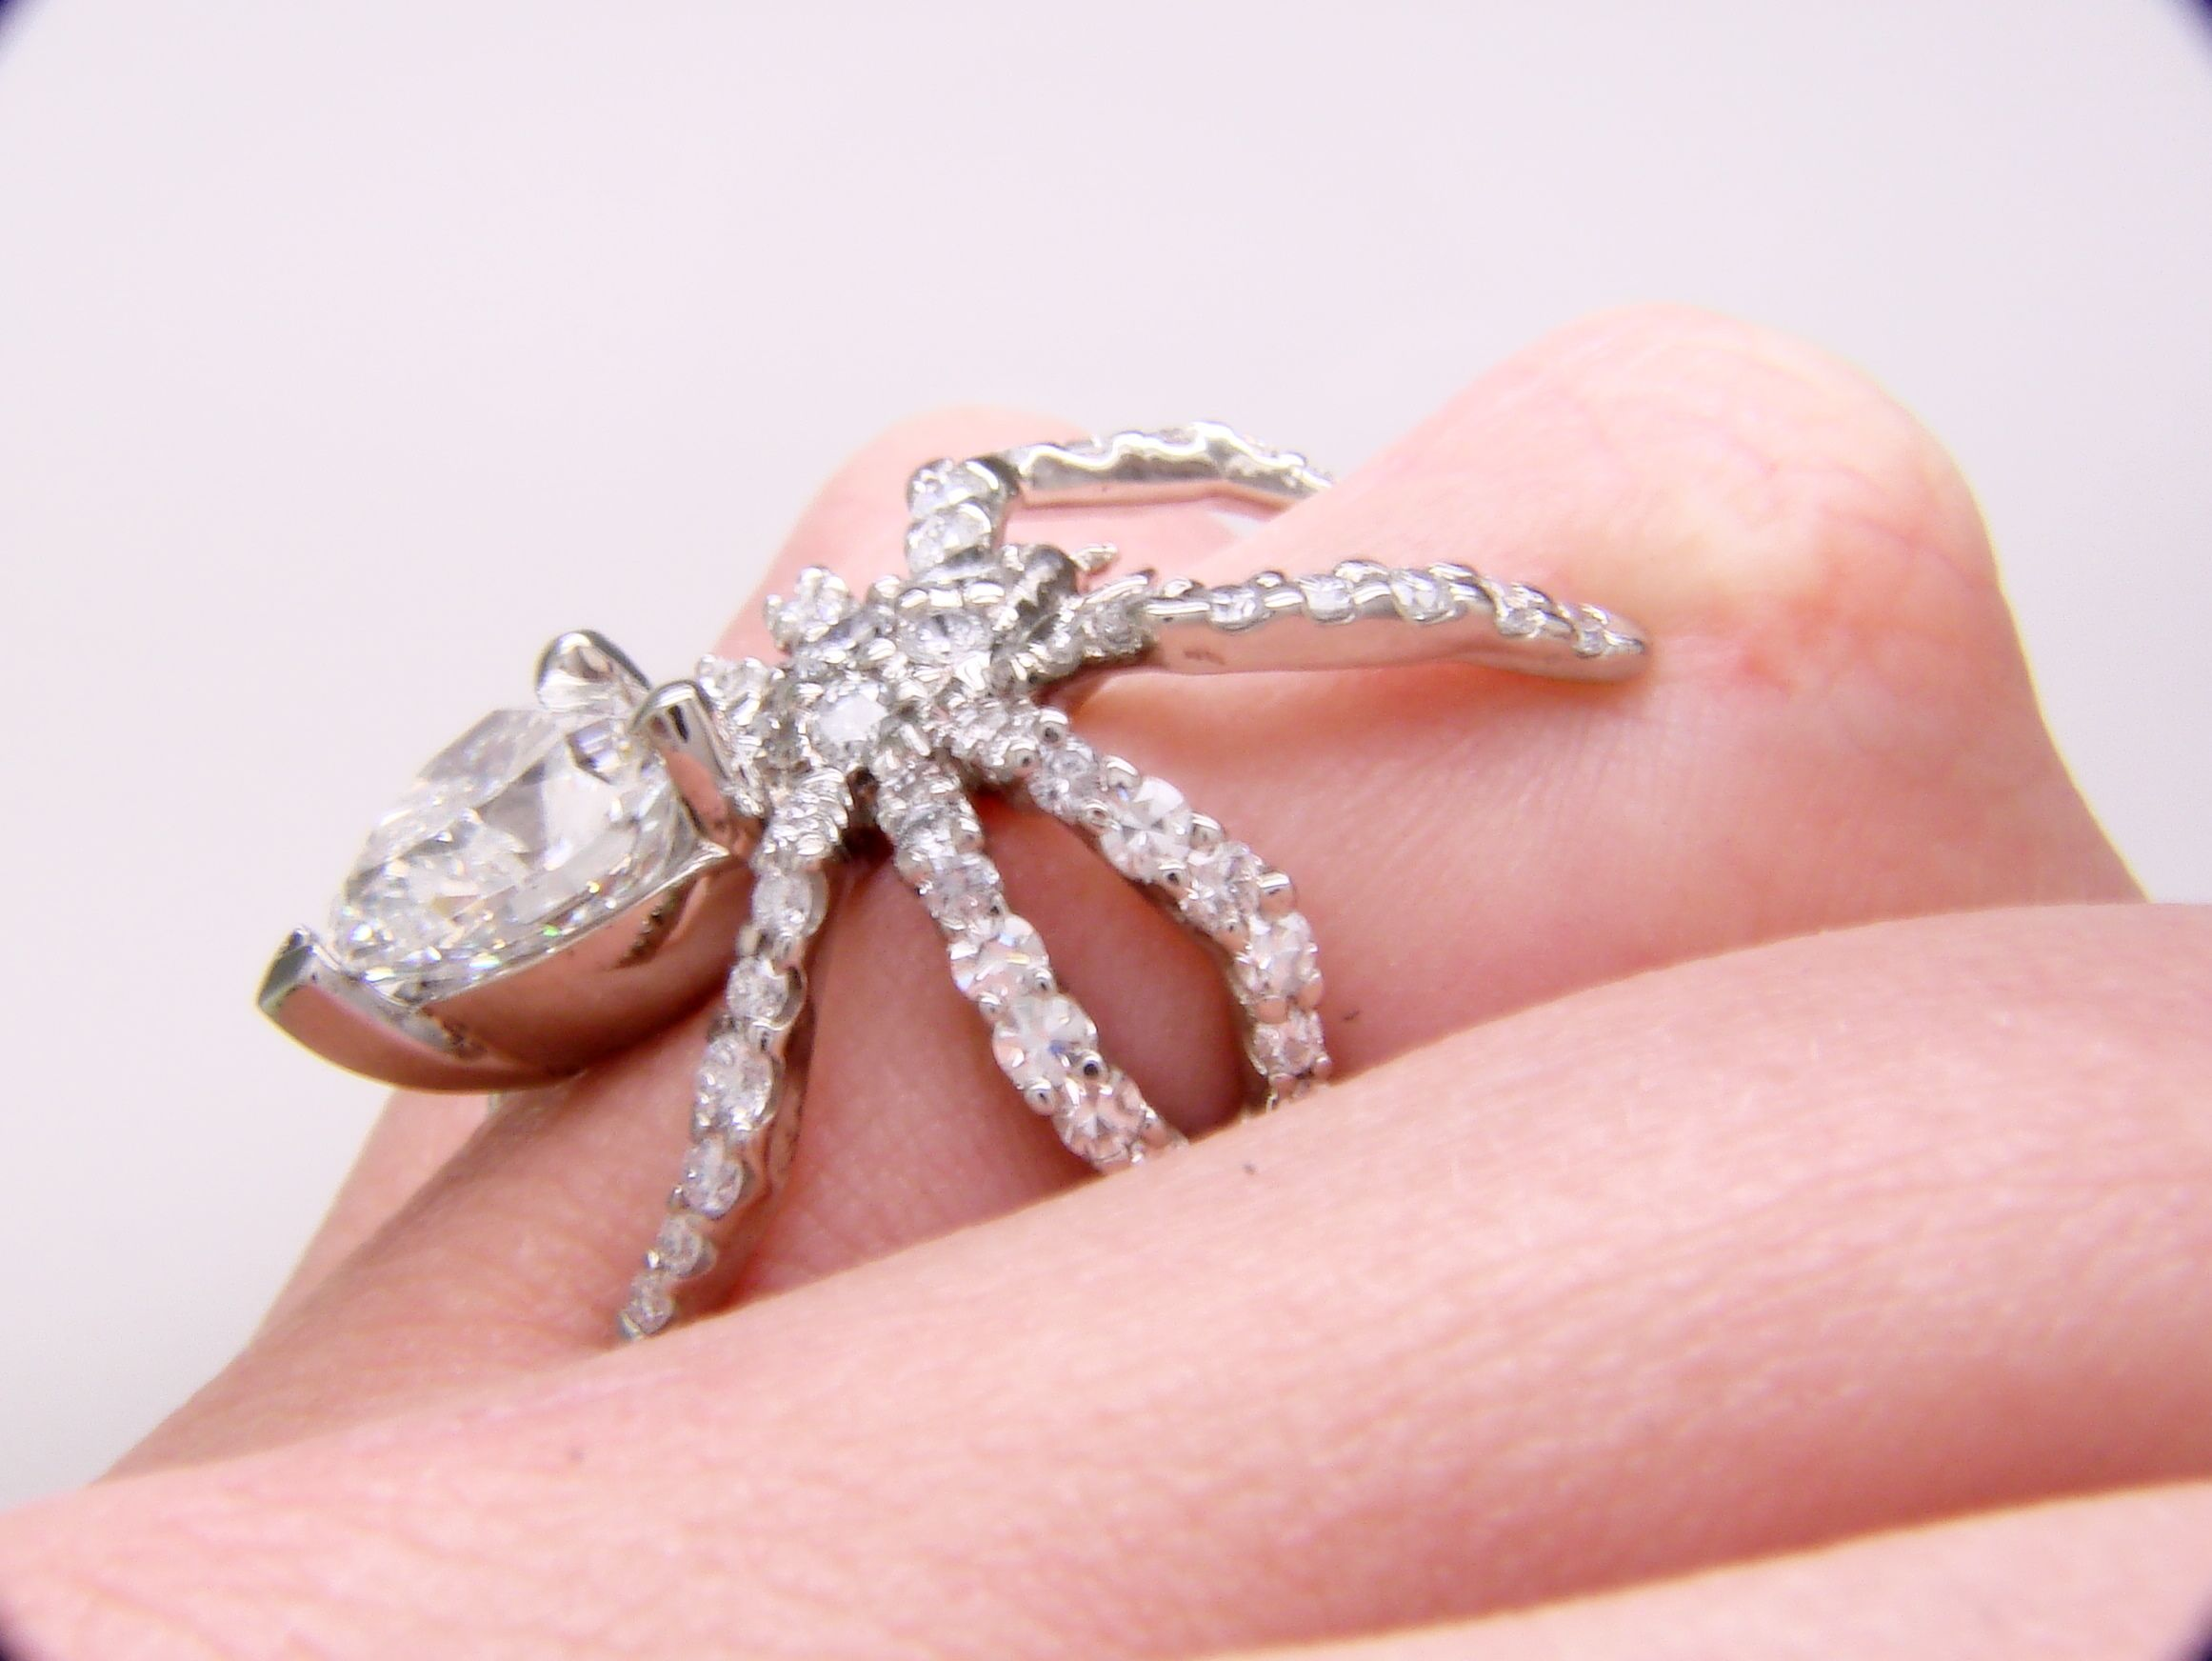 Spider Ring: 2ct heart-cut diamond in platinum | Jewelry | Pinterest ...